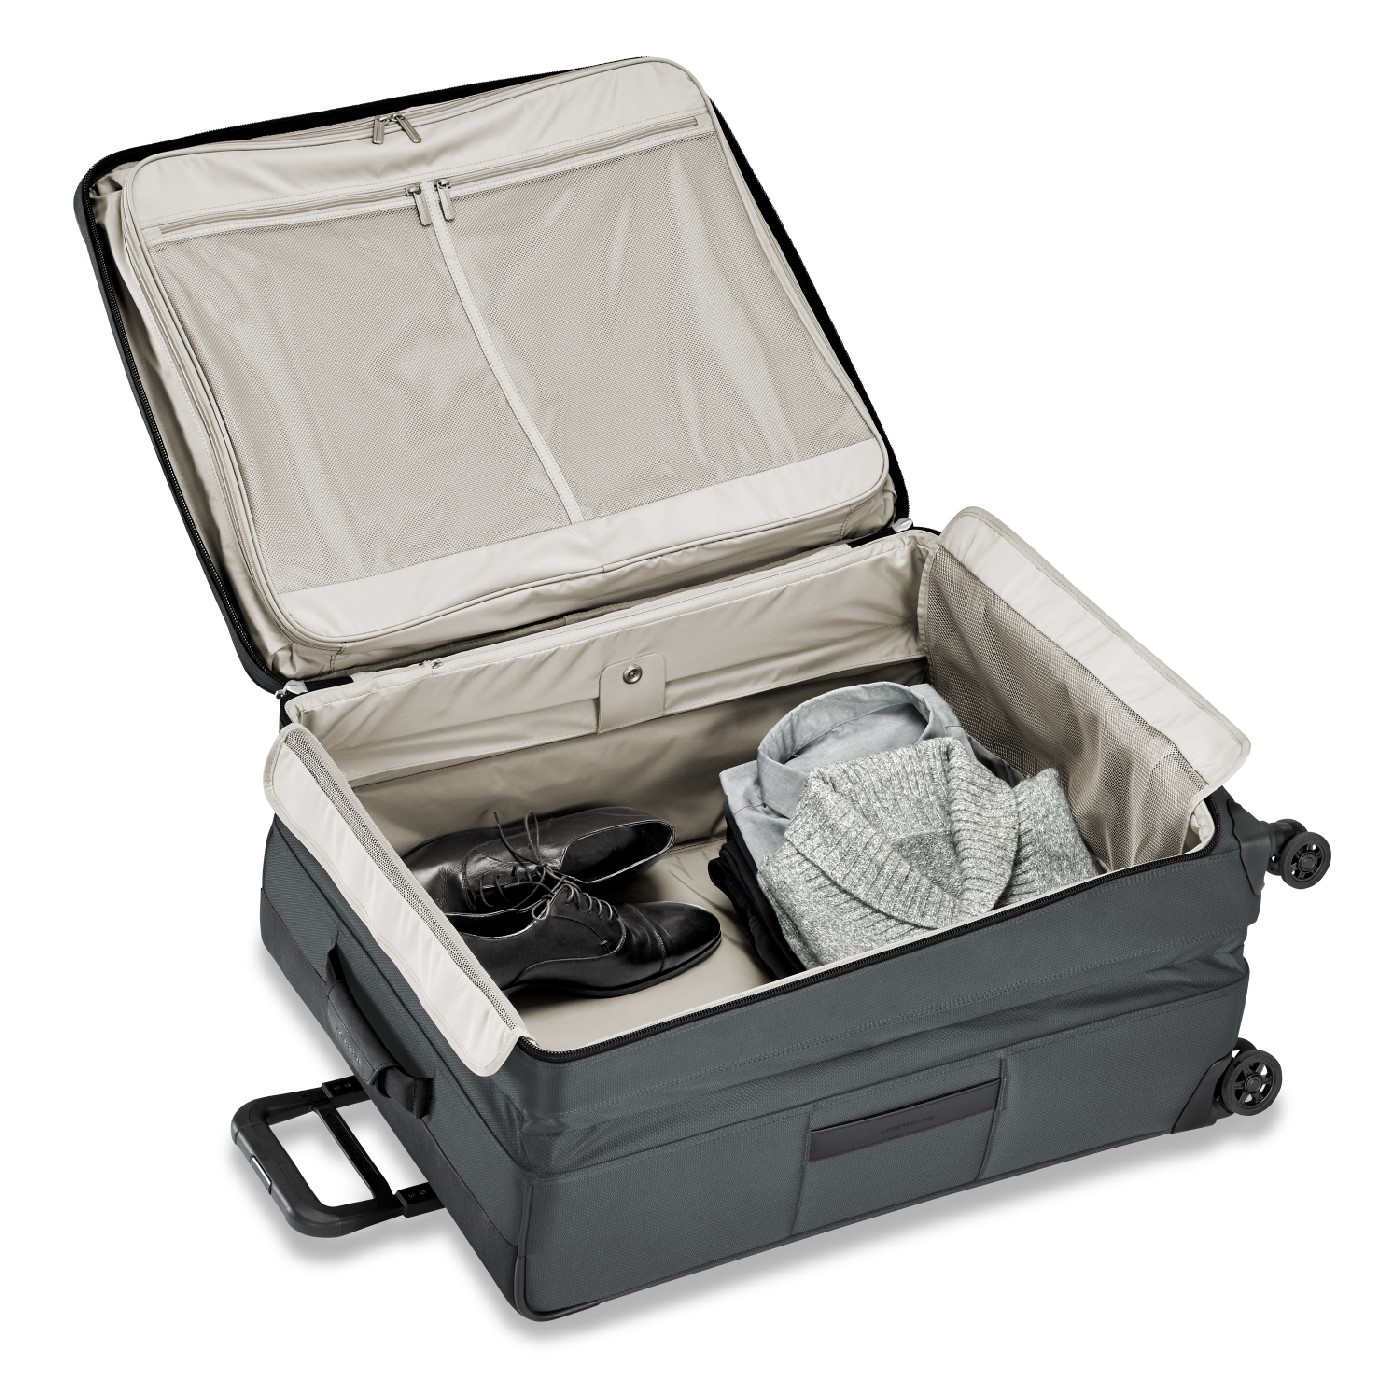 Briggs & Riley open suitcase showcasing the depth for items